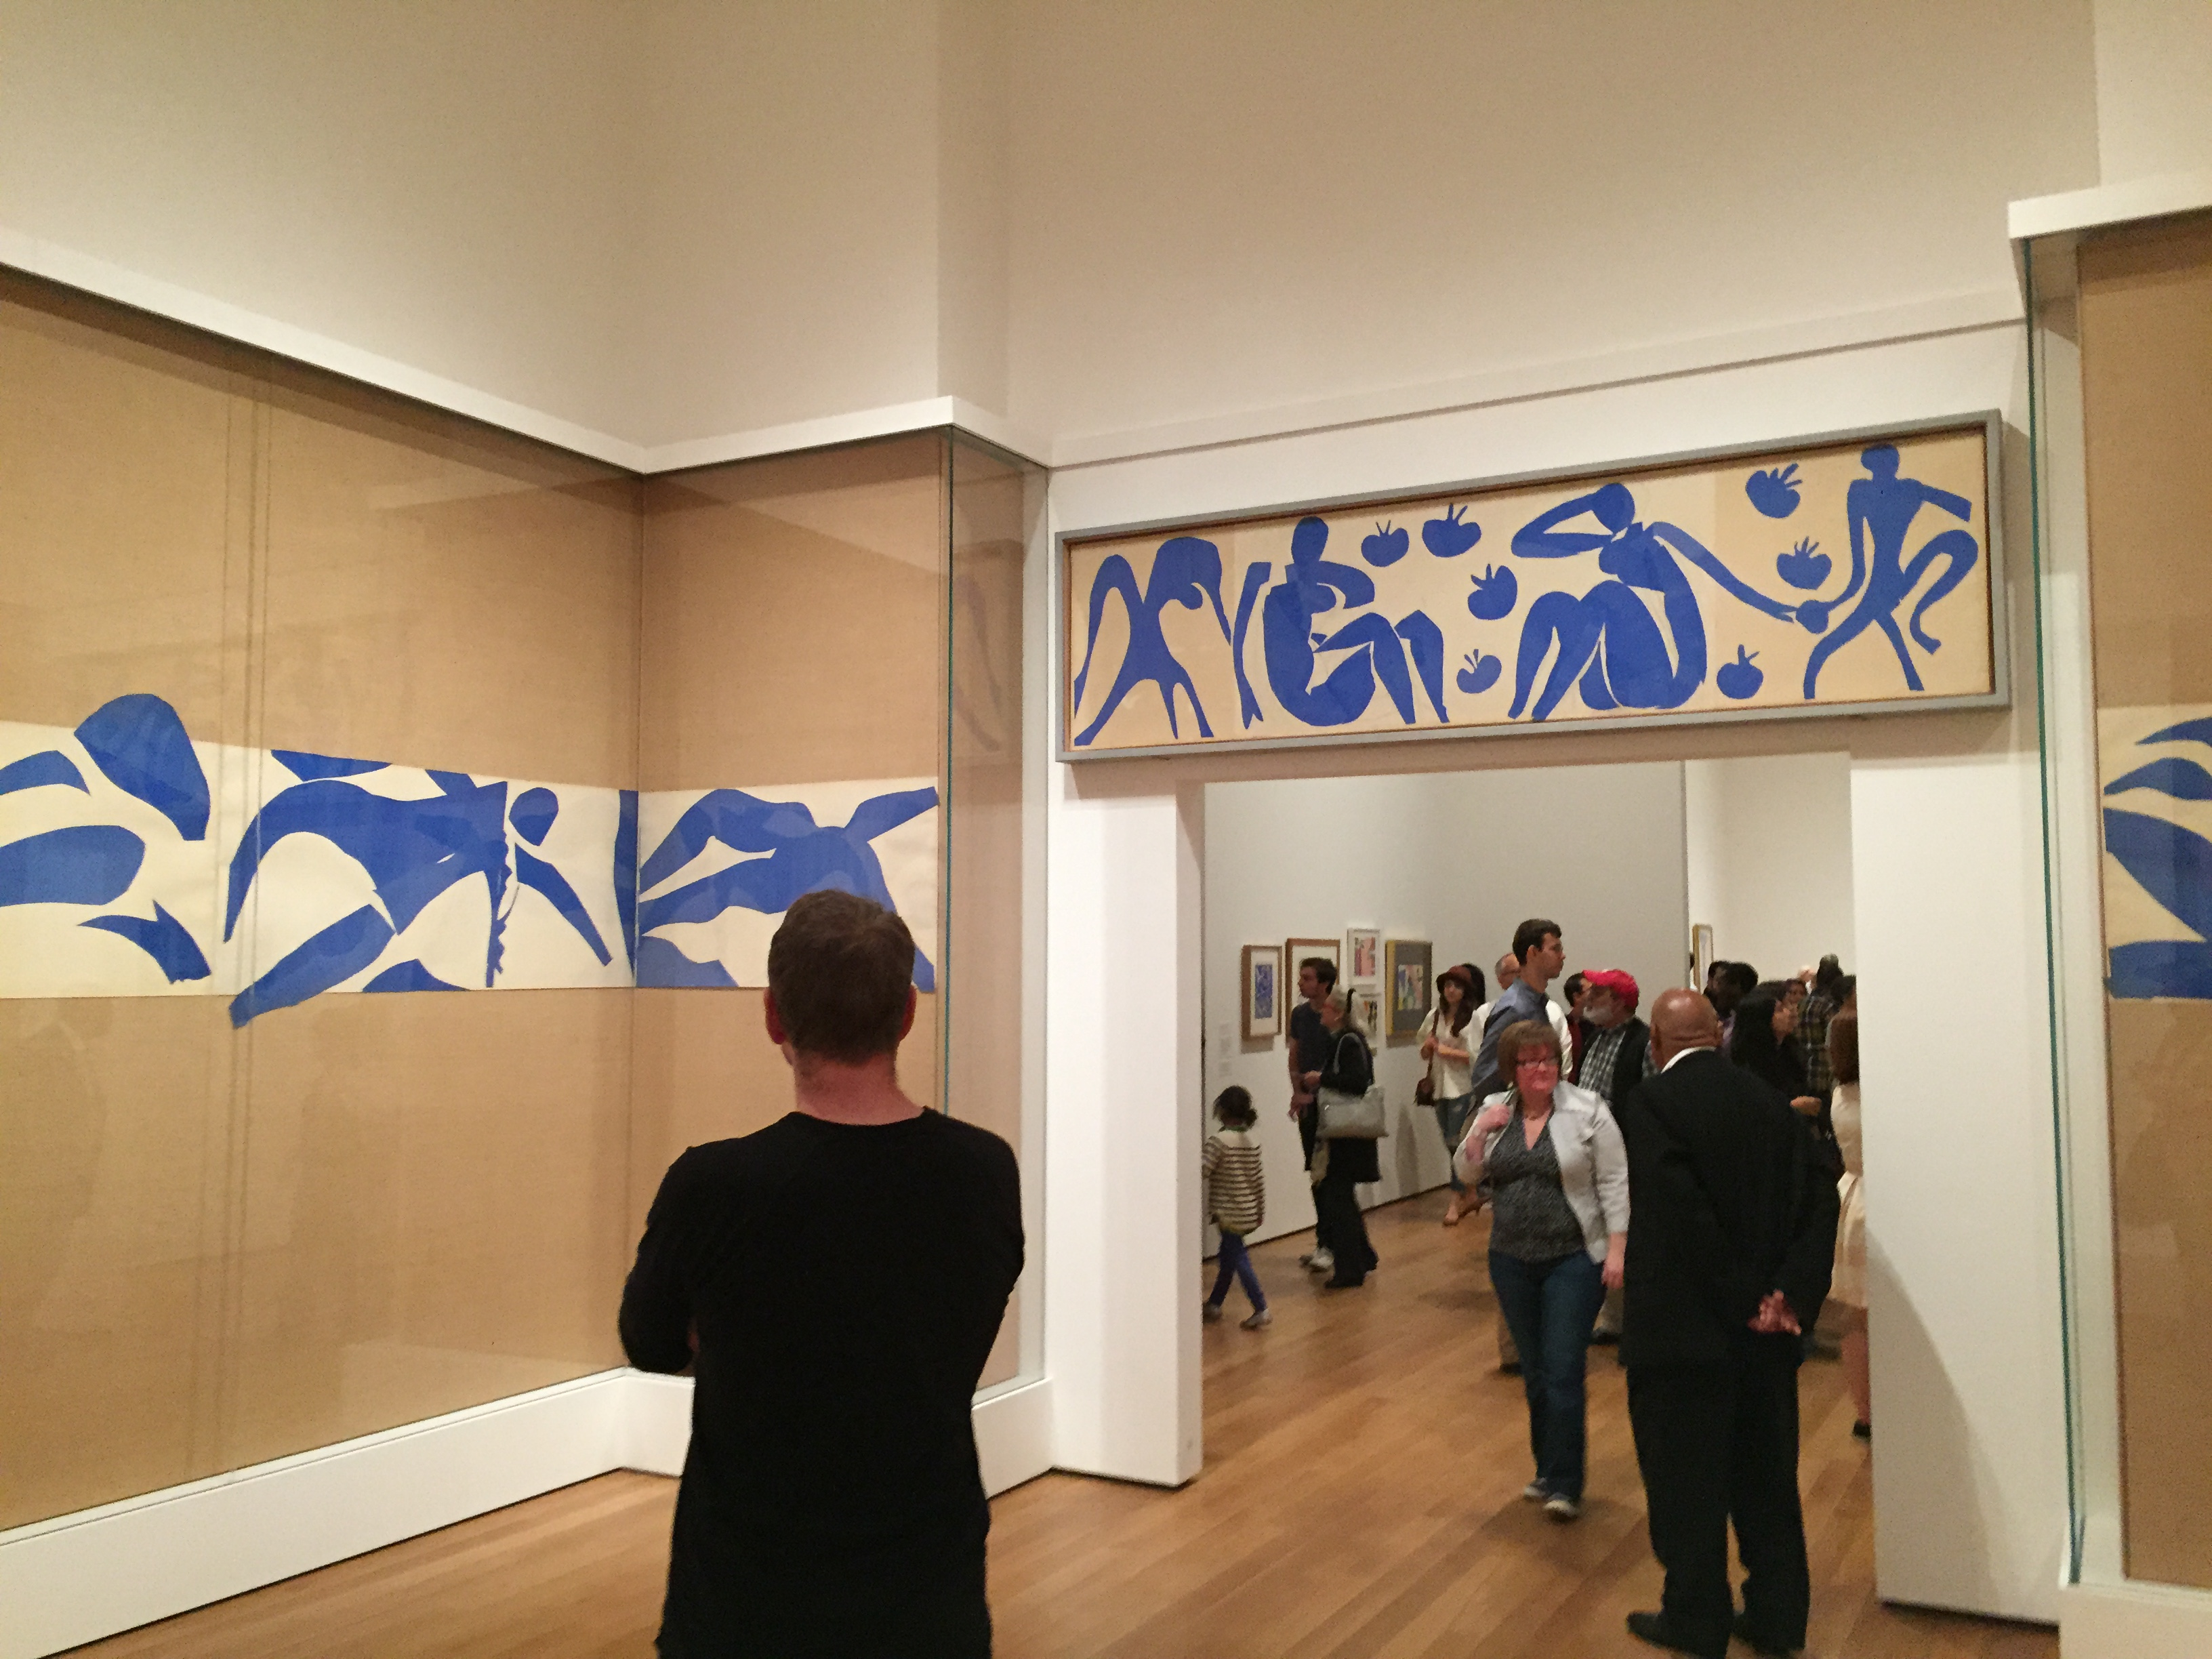 Henri Matisse The Swimming Pool (La Piscine) late summer 1952 (realized as ceramic 1999 and 2005) Gouache on paper, cut and pasted, on painted paper (Partial installation view)